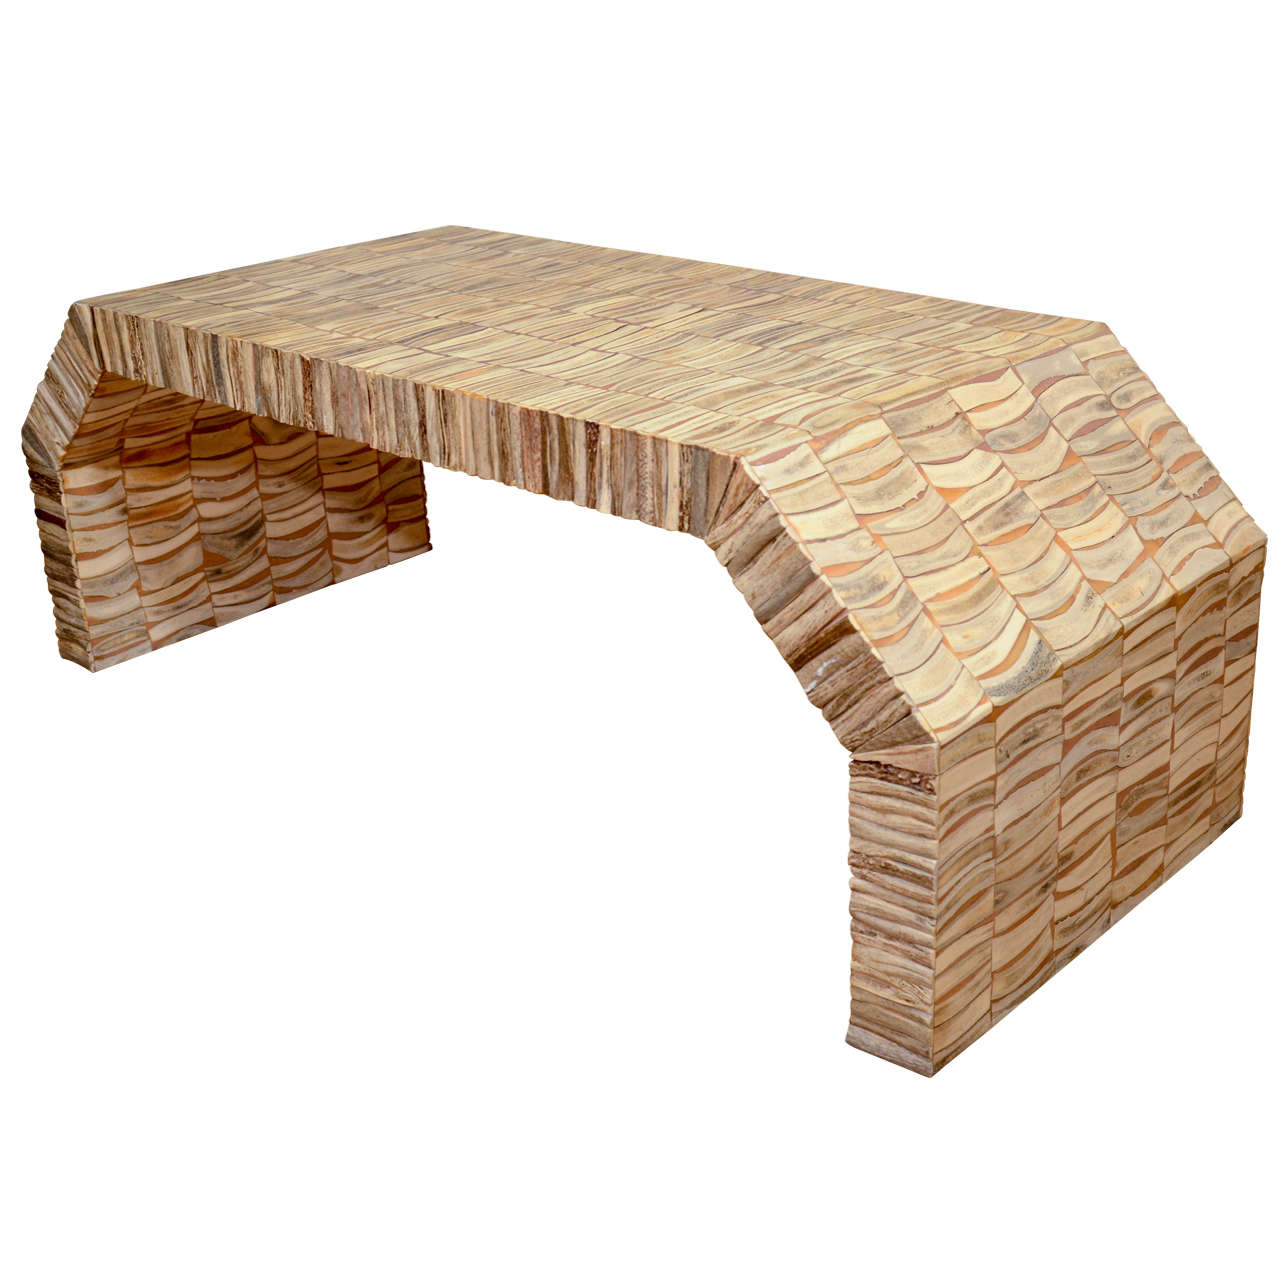 Inlaid bone veneer angled waterfall coffee table for sale